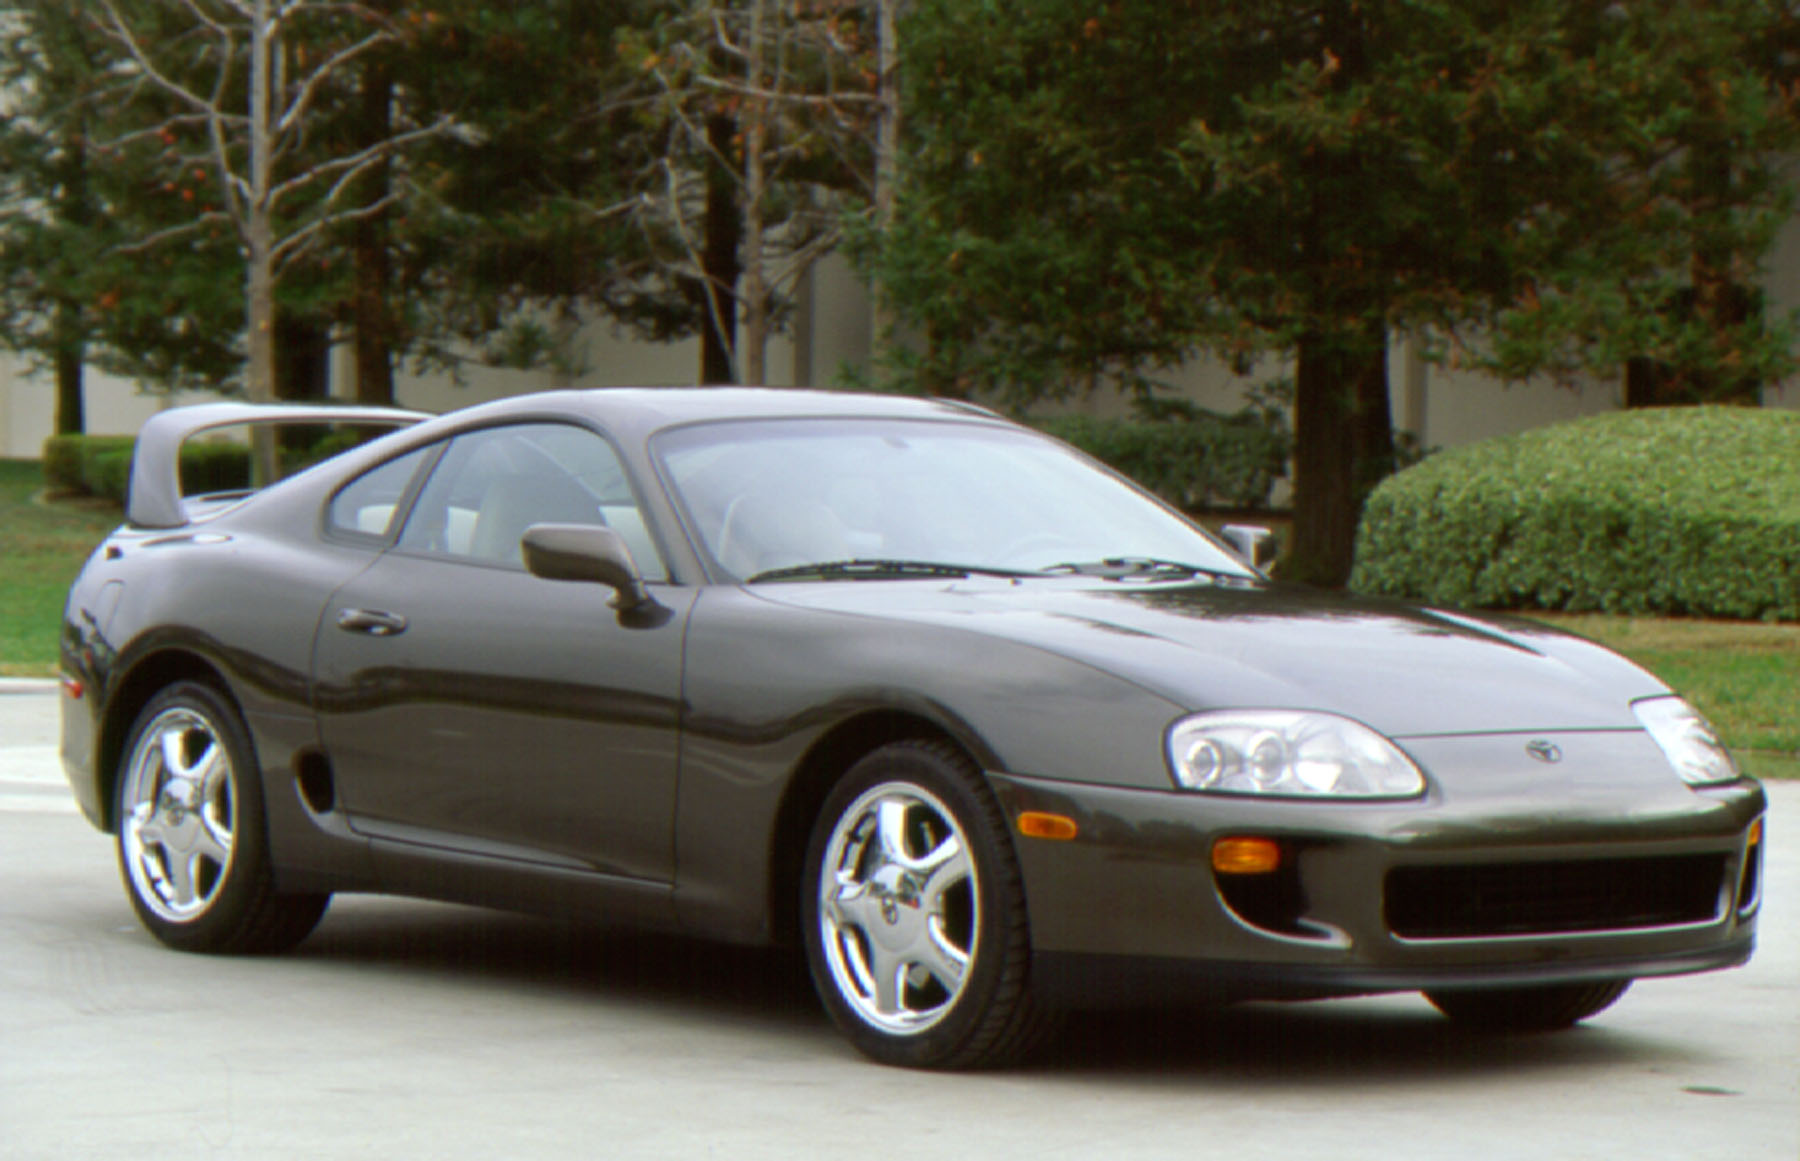 1993 Toyota Supra - Though appreciated by fans today, the 1993 Supra, like its competitors the Nissan 300ZX and Mazda RX-7, suffered from an overload of technology that made it too expensive for most buyers.